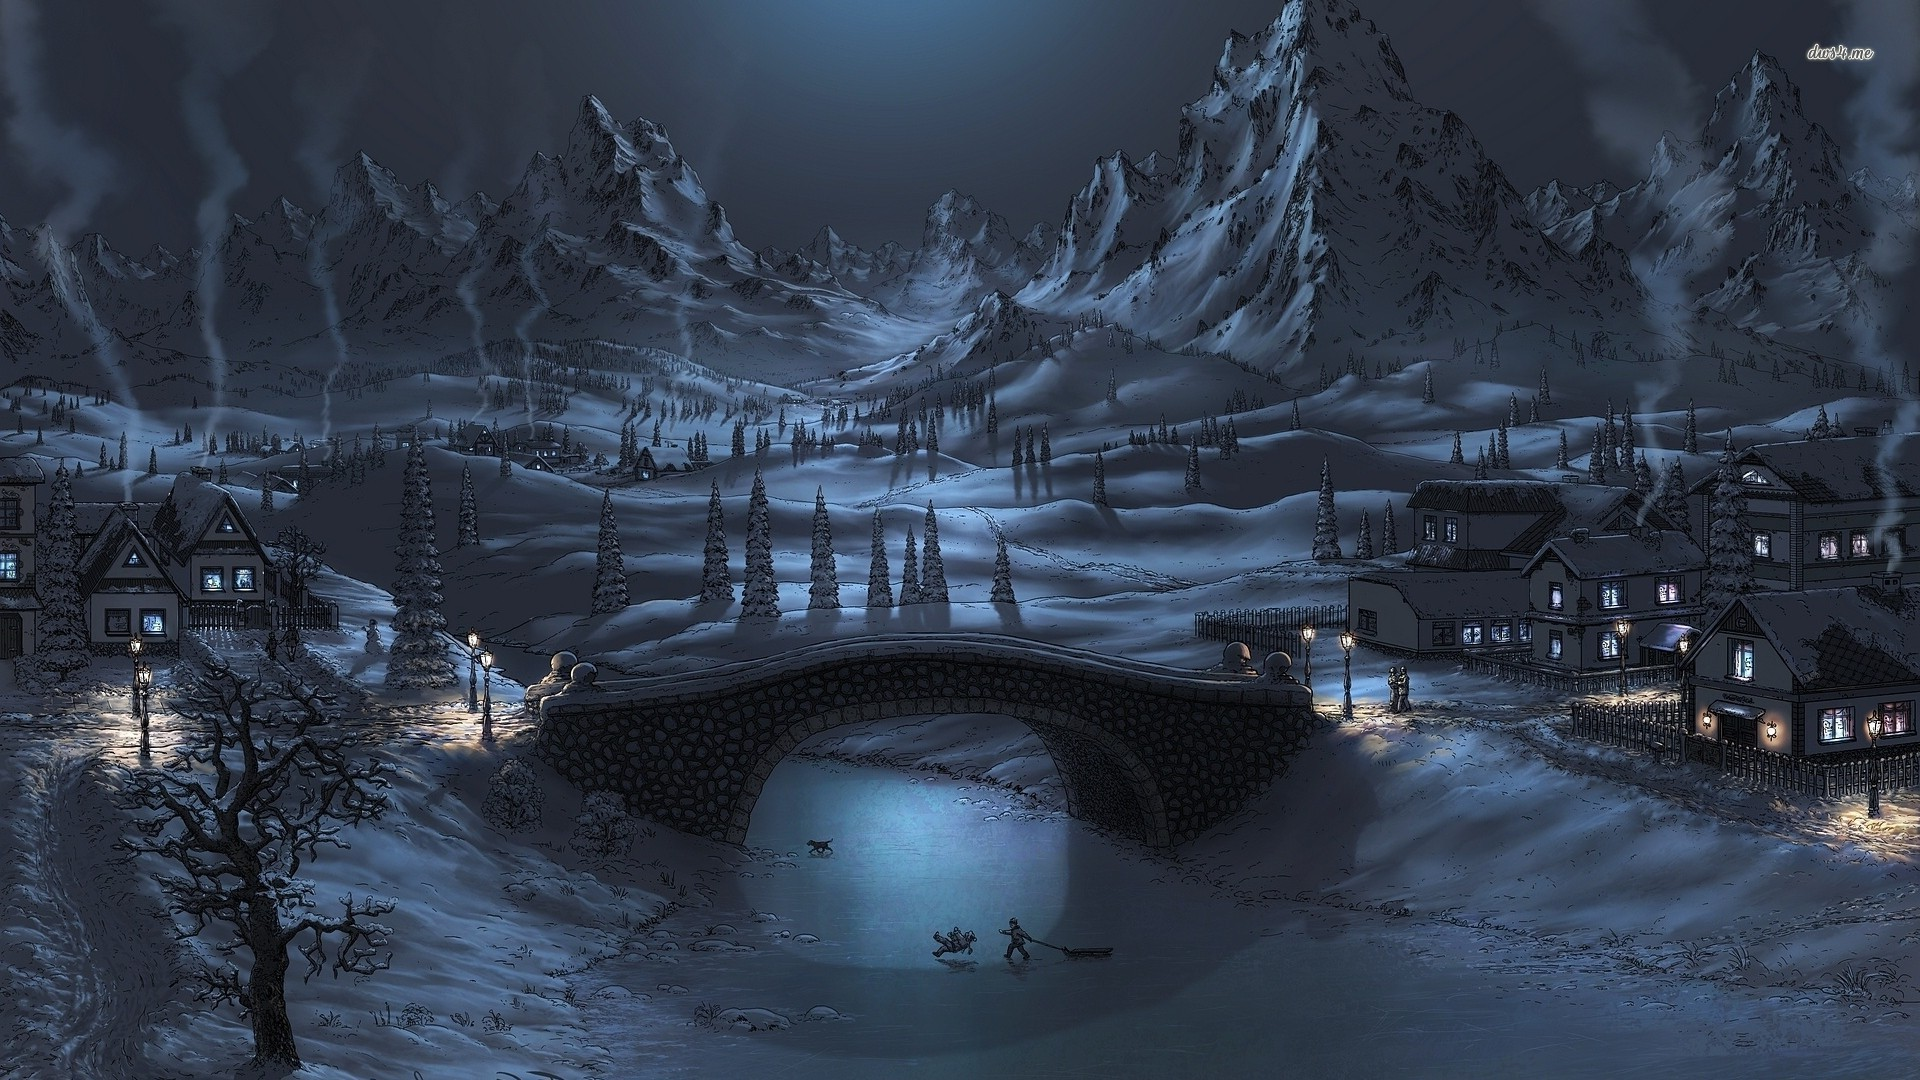 Winter Background Wallpapers WIN10 THEMES 1920x1080